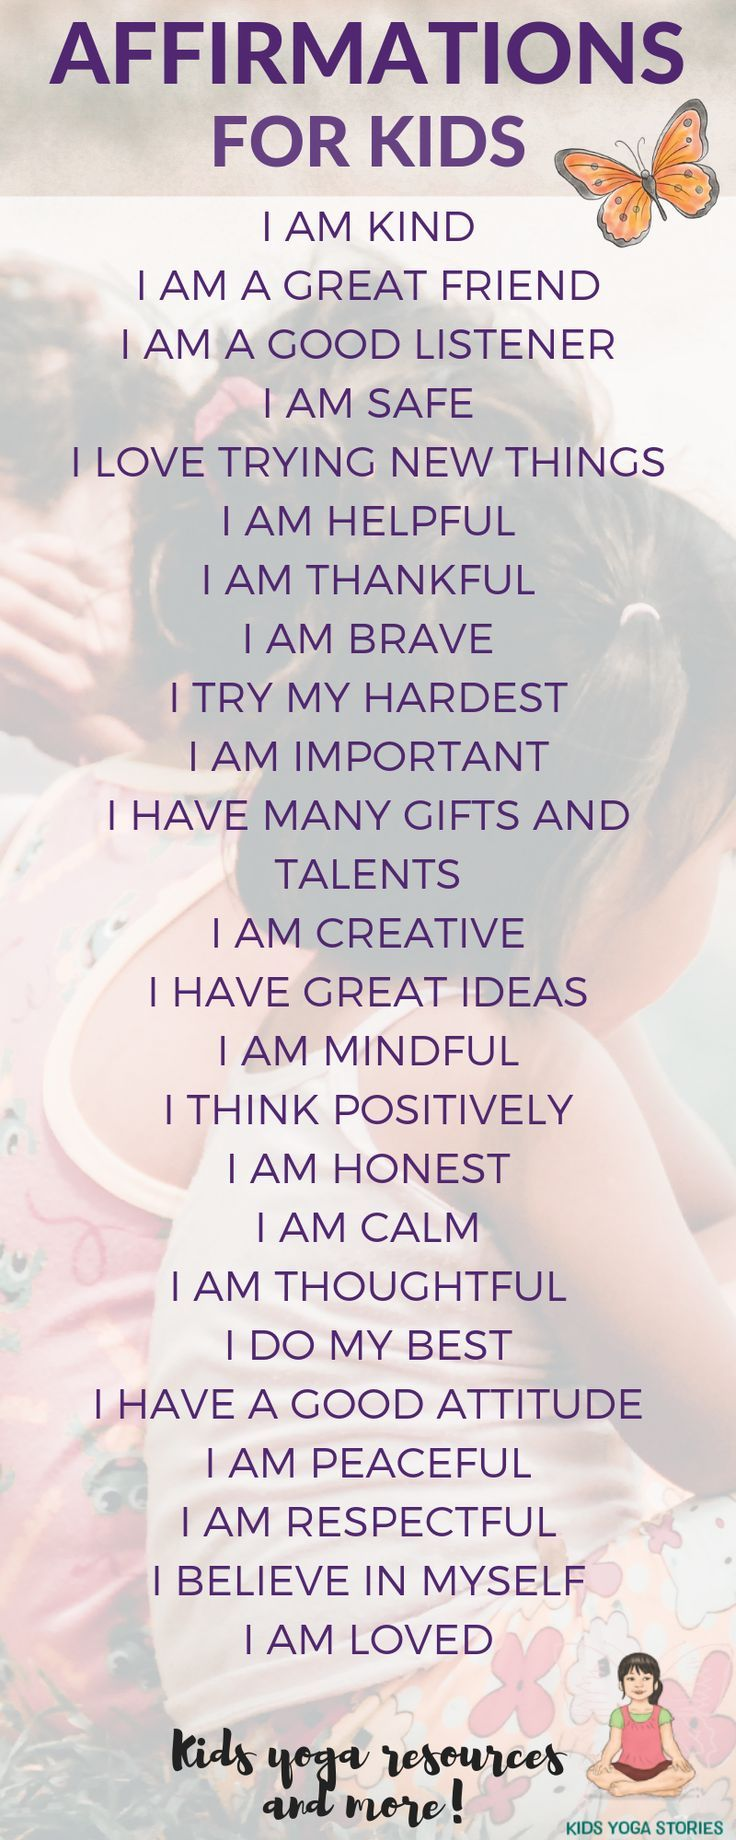 Promoting positivity, mindfulness and a growth mindset.  Use these statements wi...